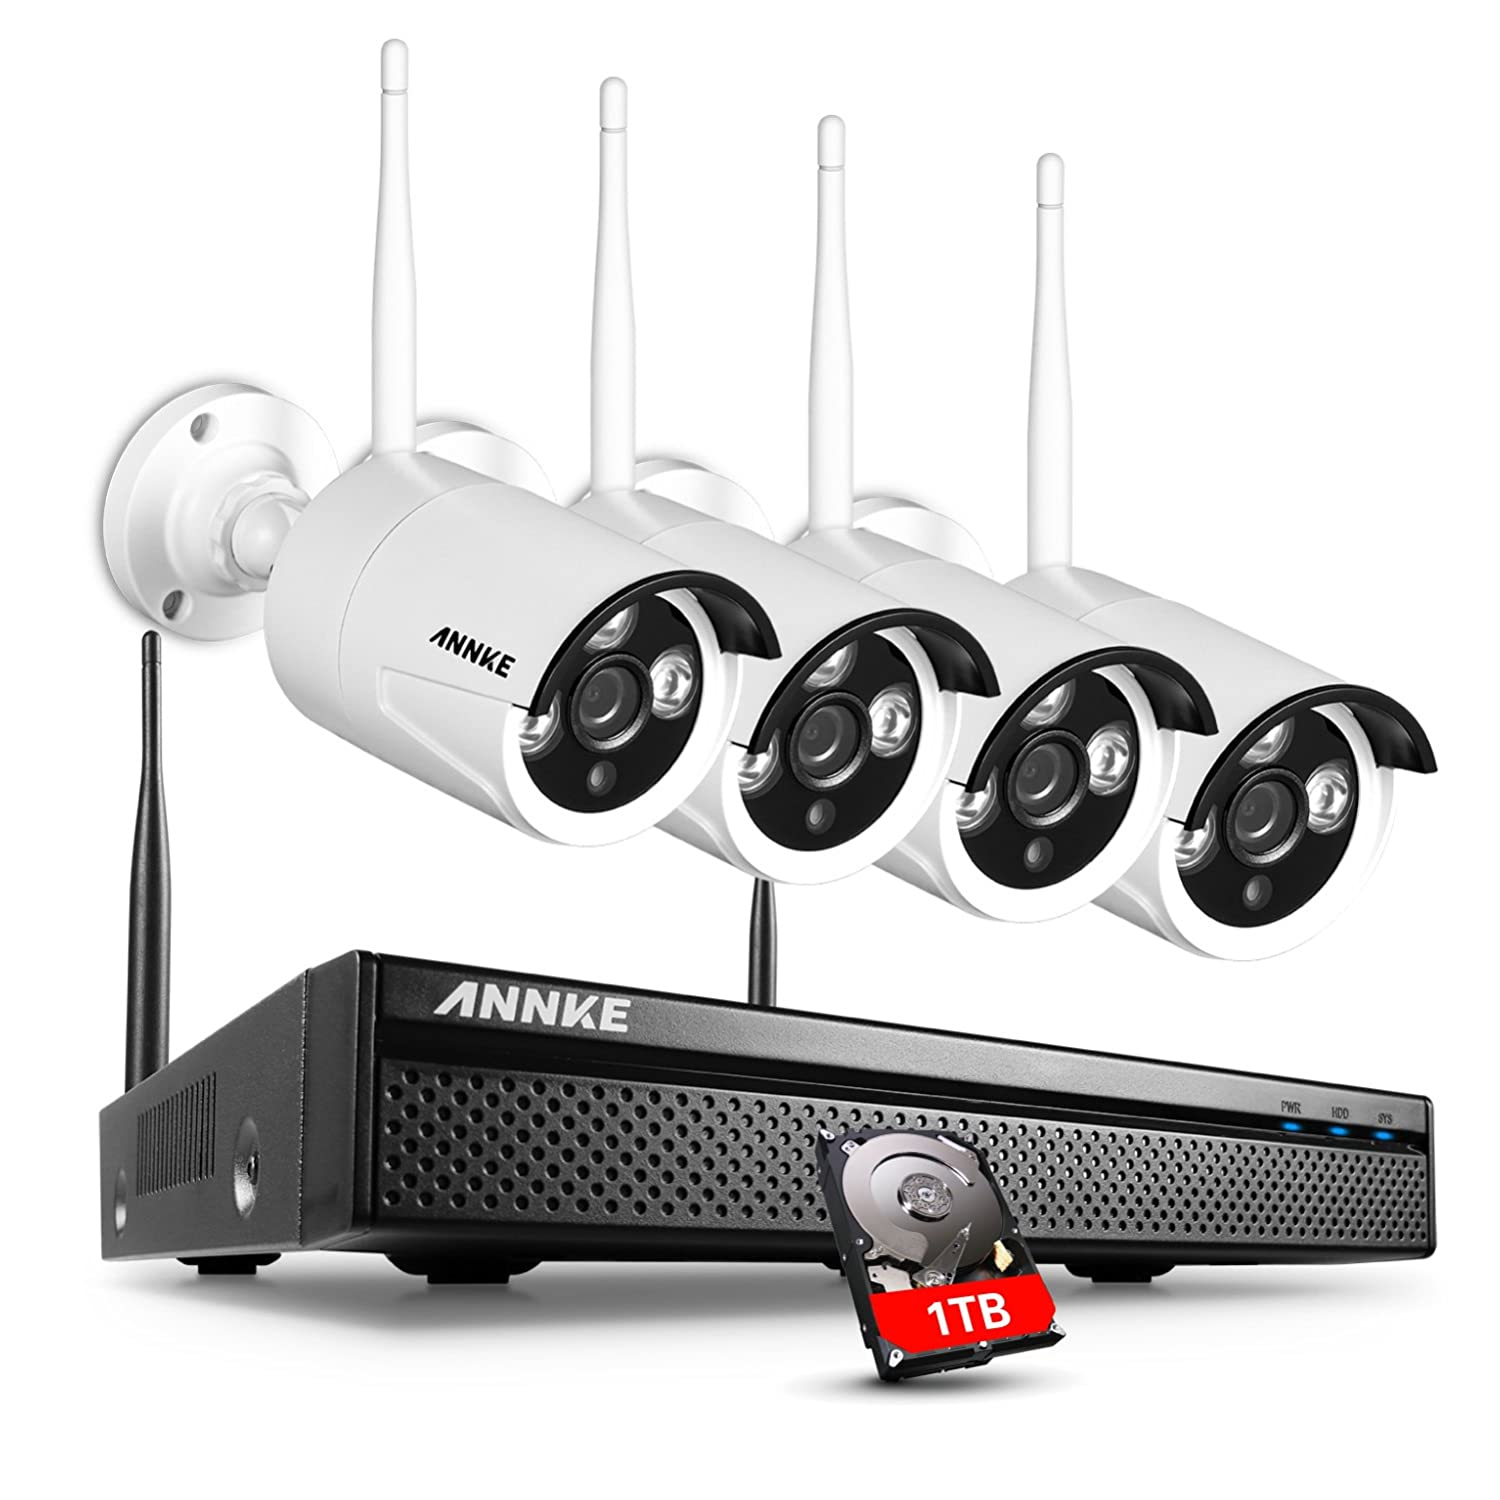 Annke 4 Channel Wifi Full Hd 1080p Nvr Wireless Cctv Camera Systems Drawing Modern Electronic Circuit Security Concept Of Electronics 1tb Surveillance Hard Drive W X 960p Ip Cameras Wi Fi Transmission